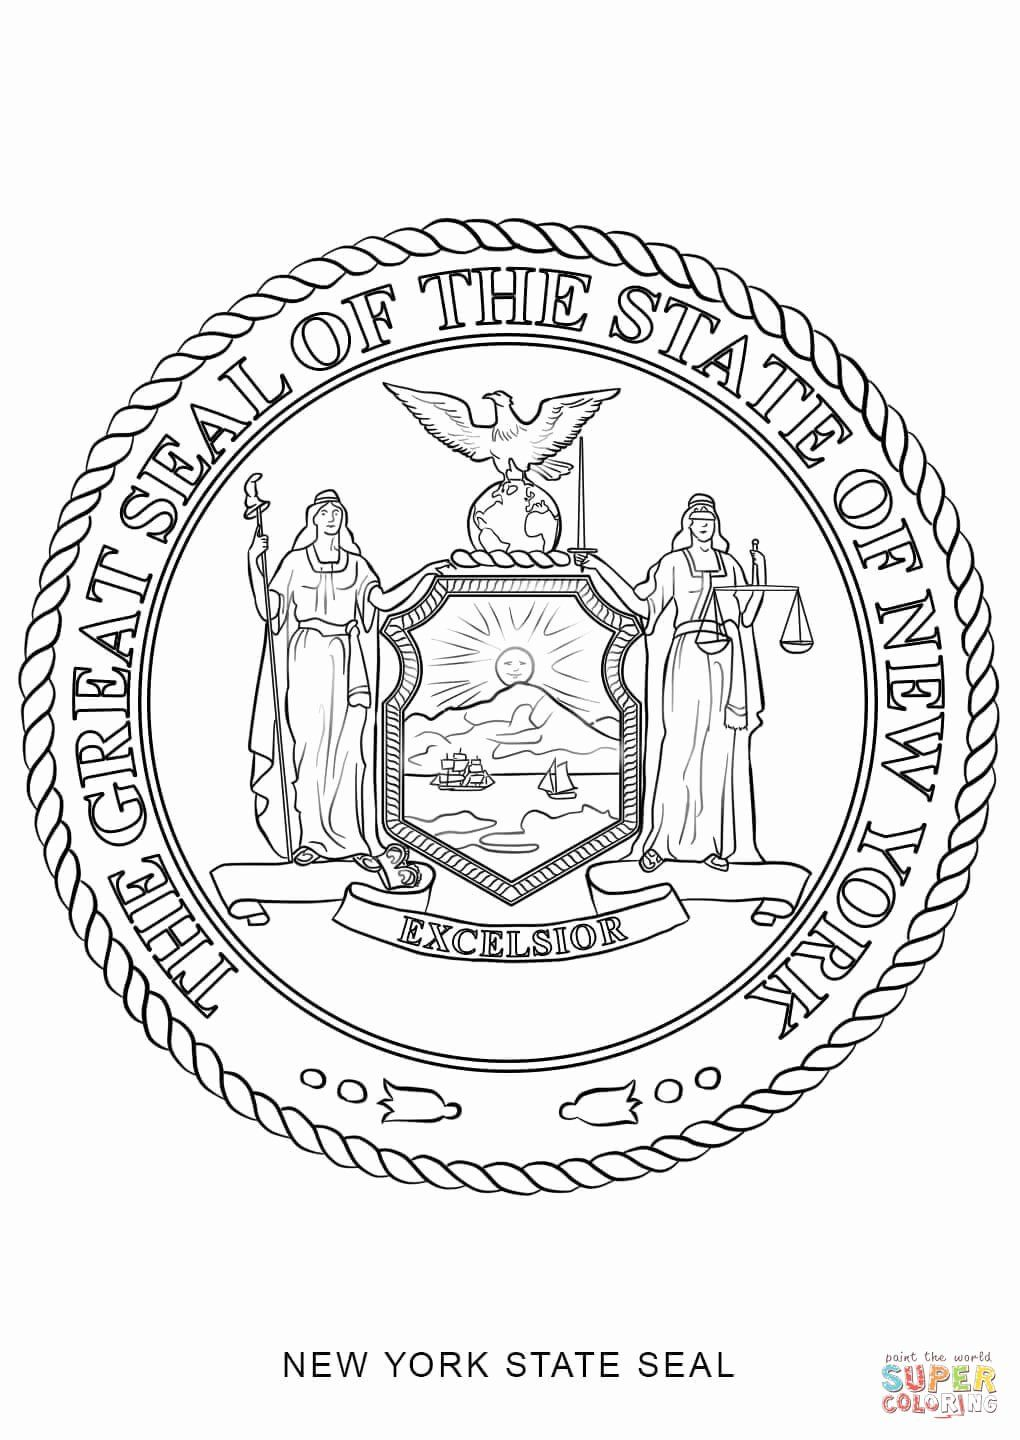 State Flags Coloring Pages Lovely New York State Flag Coloring Page At Getdrawings Flag Coloring Pages American Flag Coloring Page Flower Coloring Pages